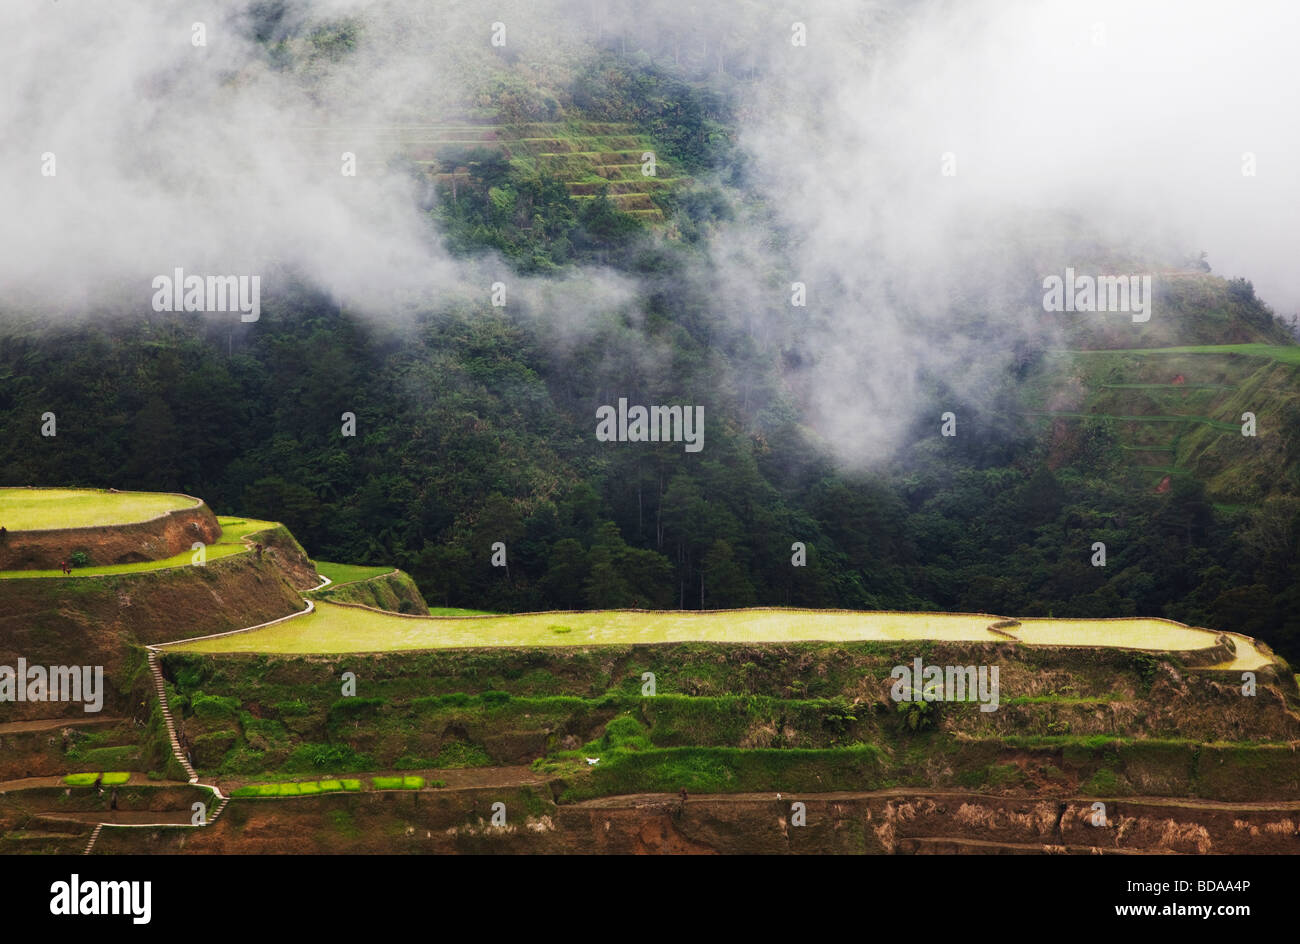 Rice terraces at Banaue Ifugao Province Northern Luzon Philippines - Stock Image